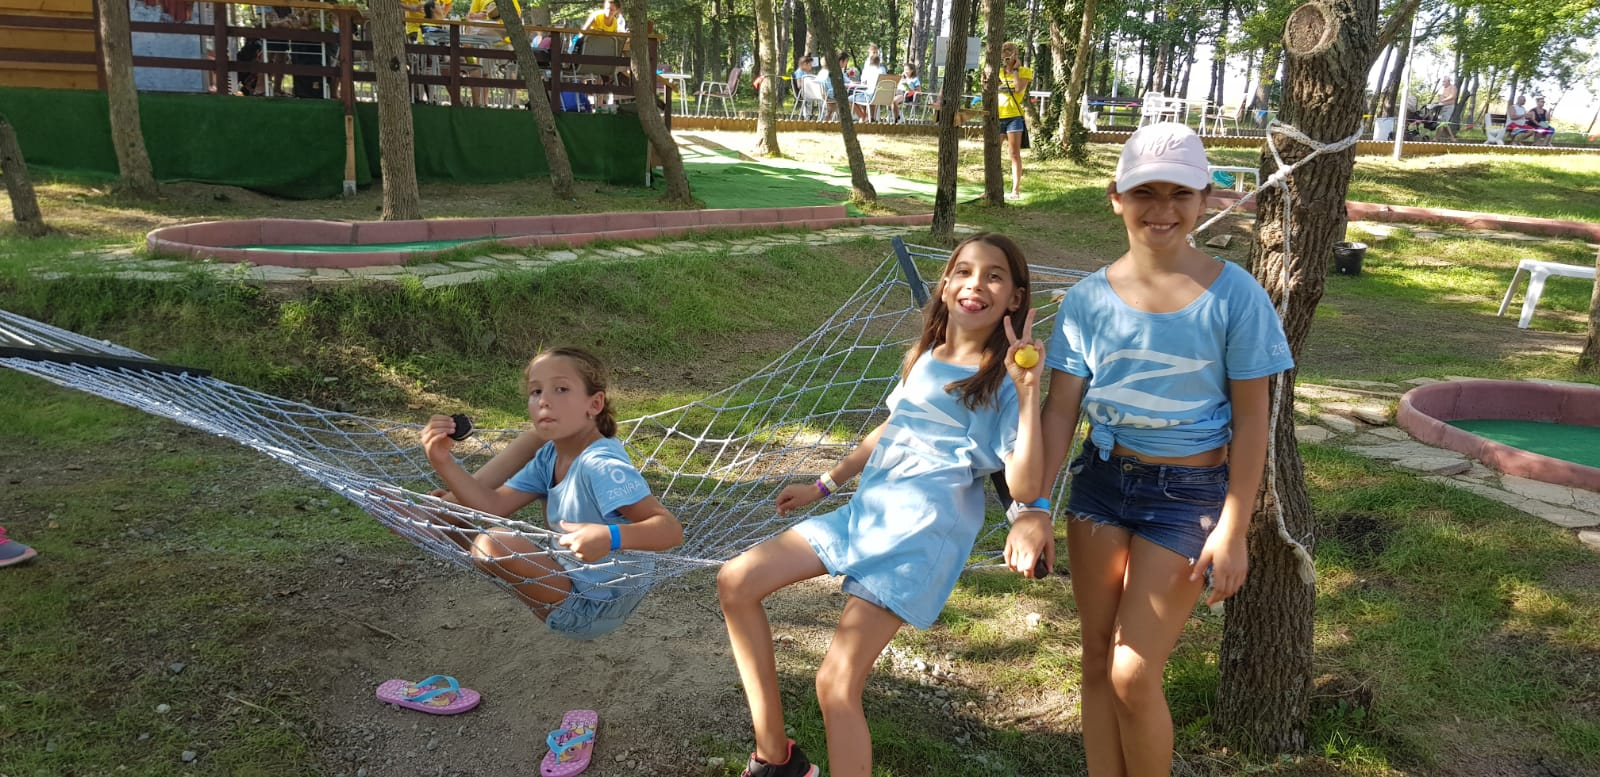 Z camp, day 19 - mini golf in Tsarevo - 3 girls with T-shirt of Z camp are at the hammock